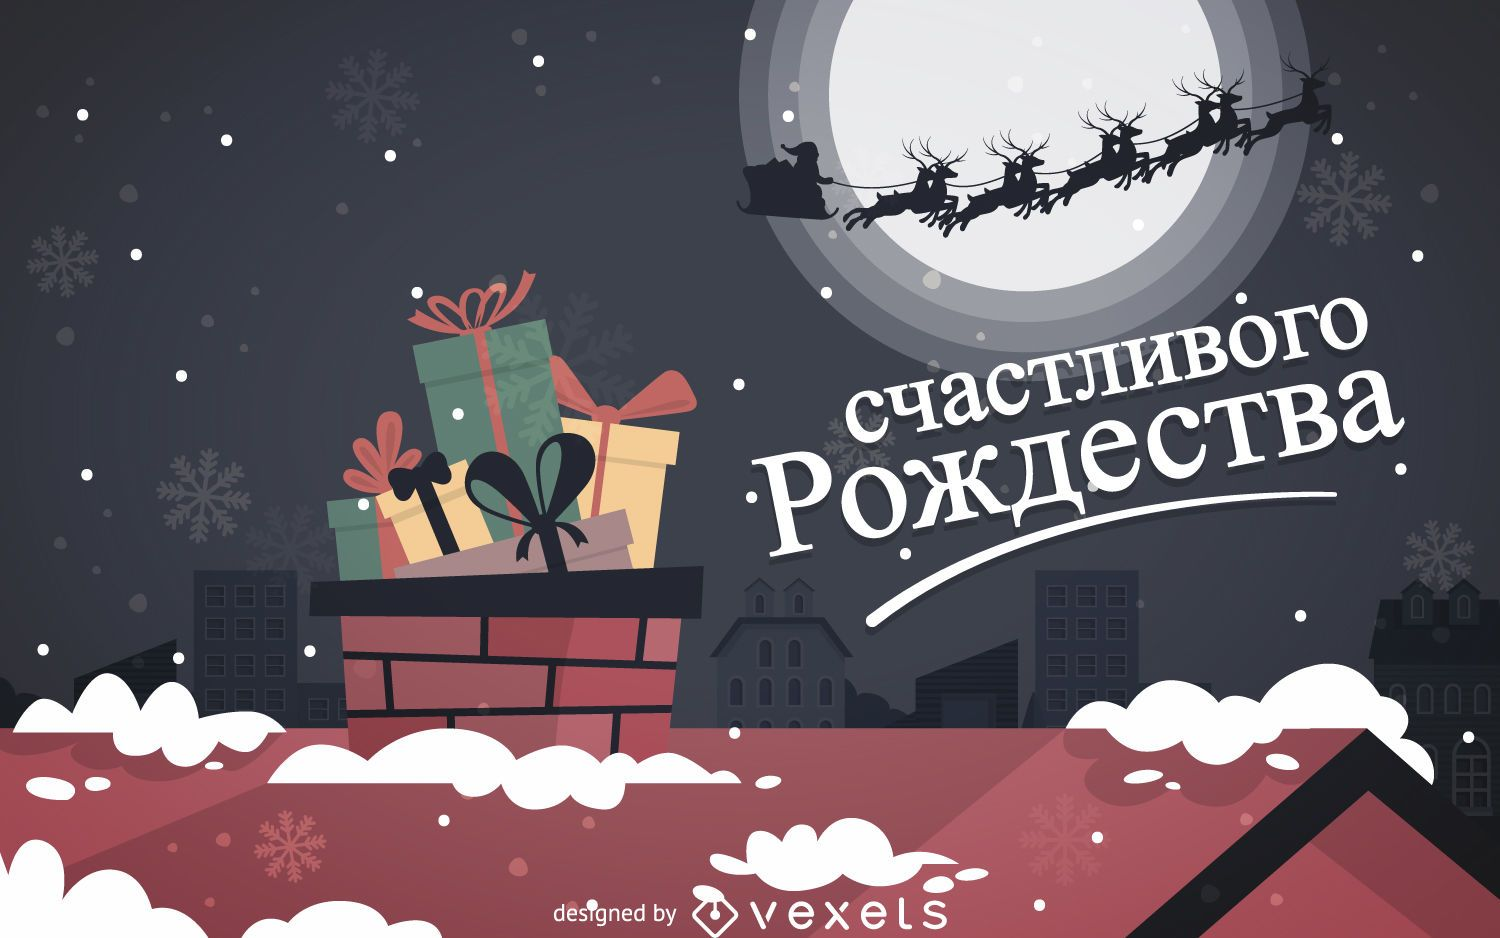 russian merry christmas design download large image 1500x938px license image user - Russian Merry Christmas